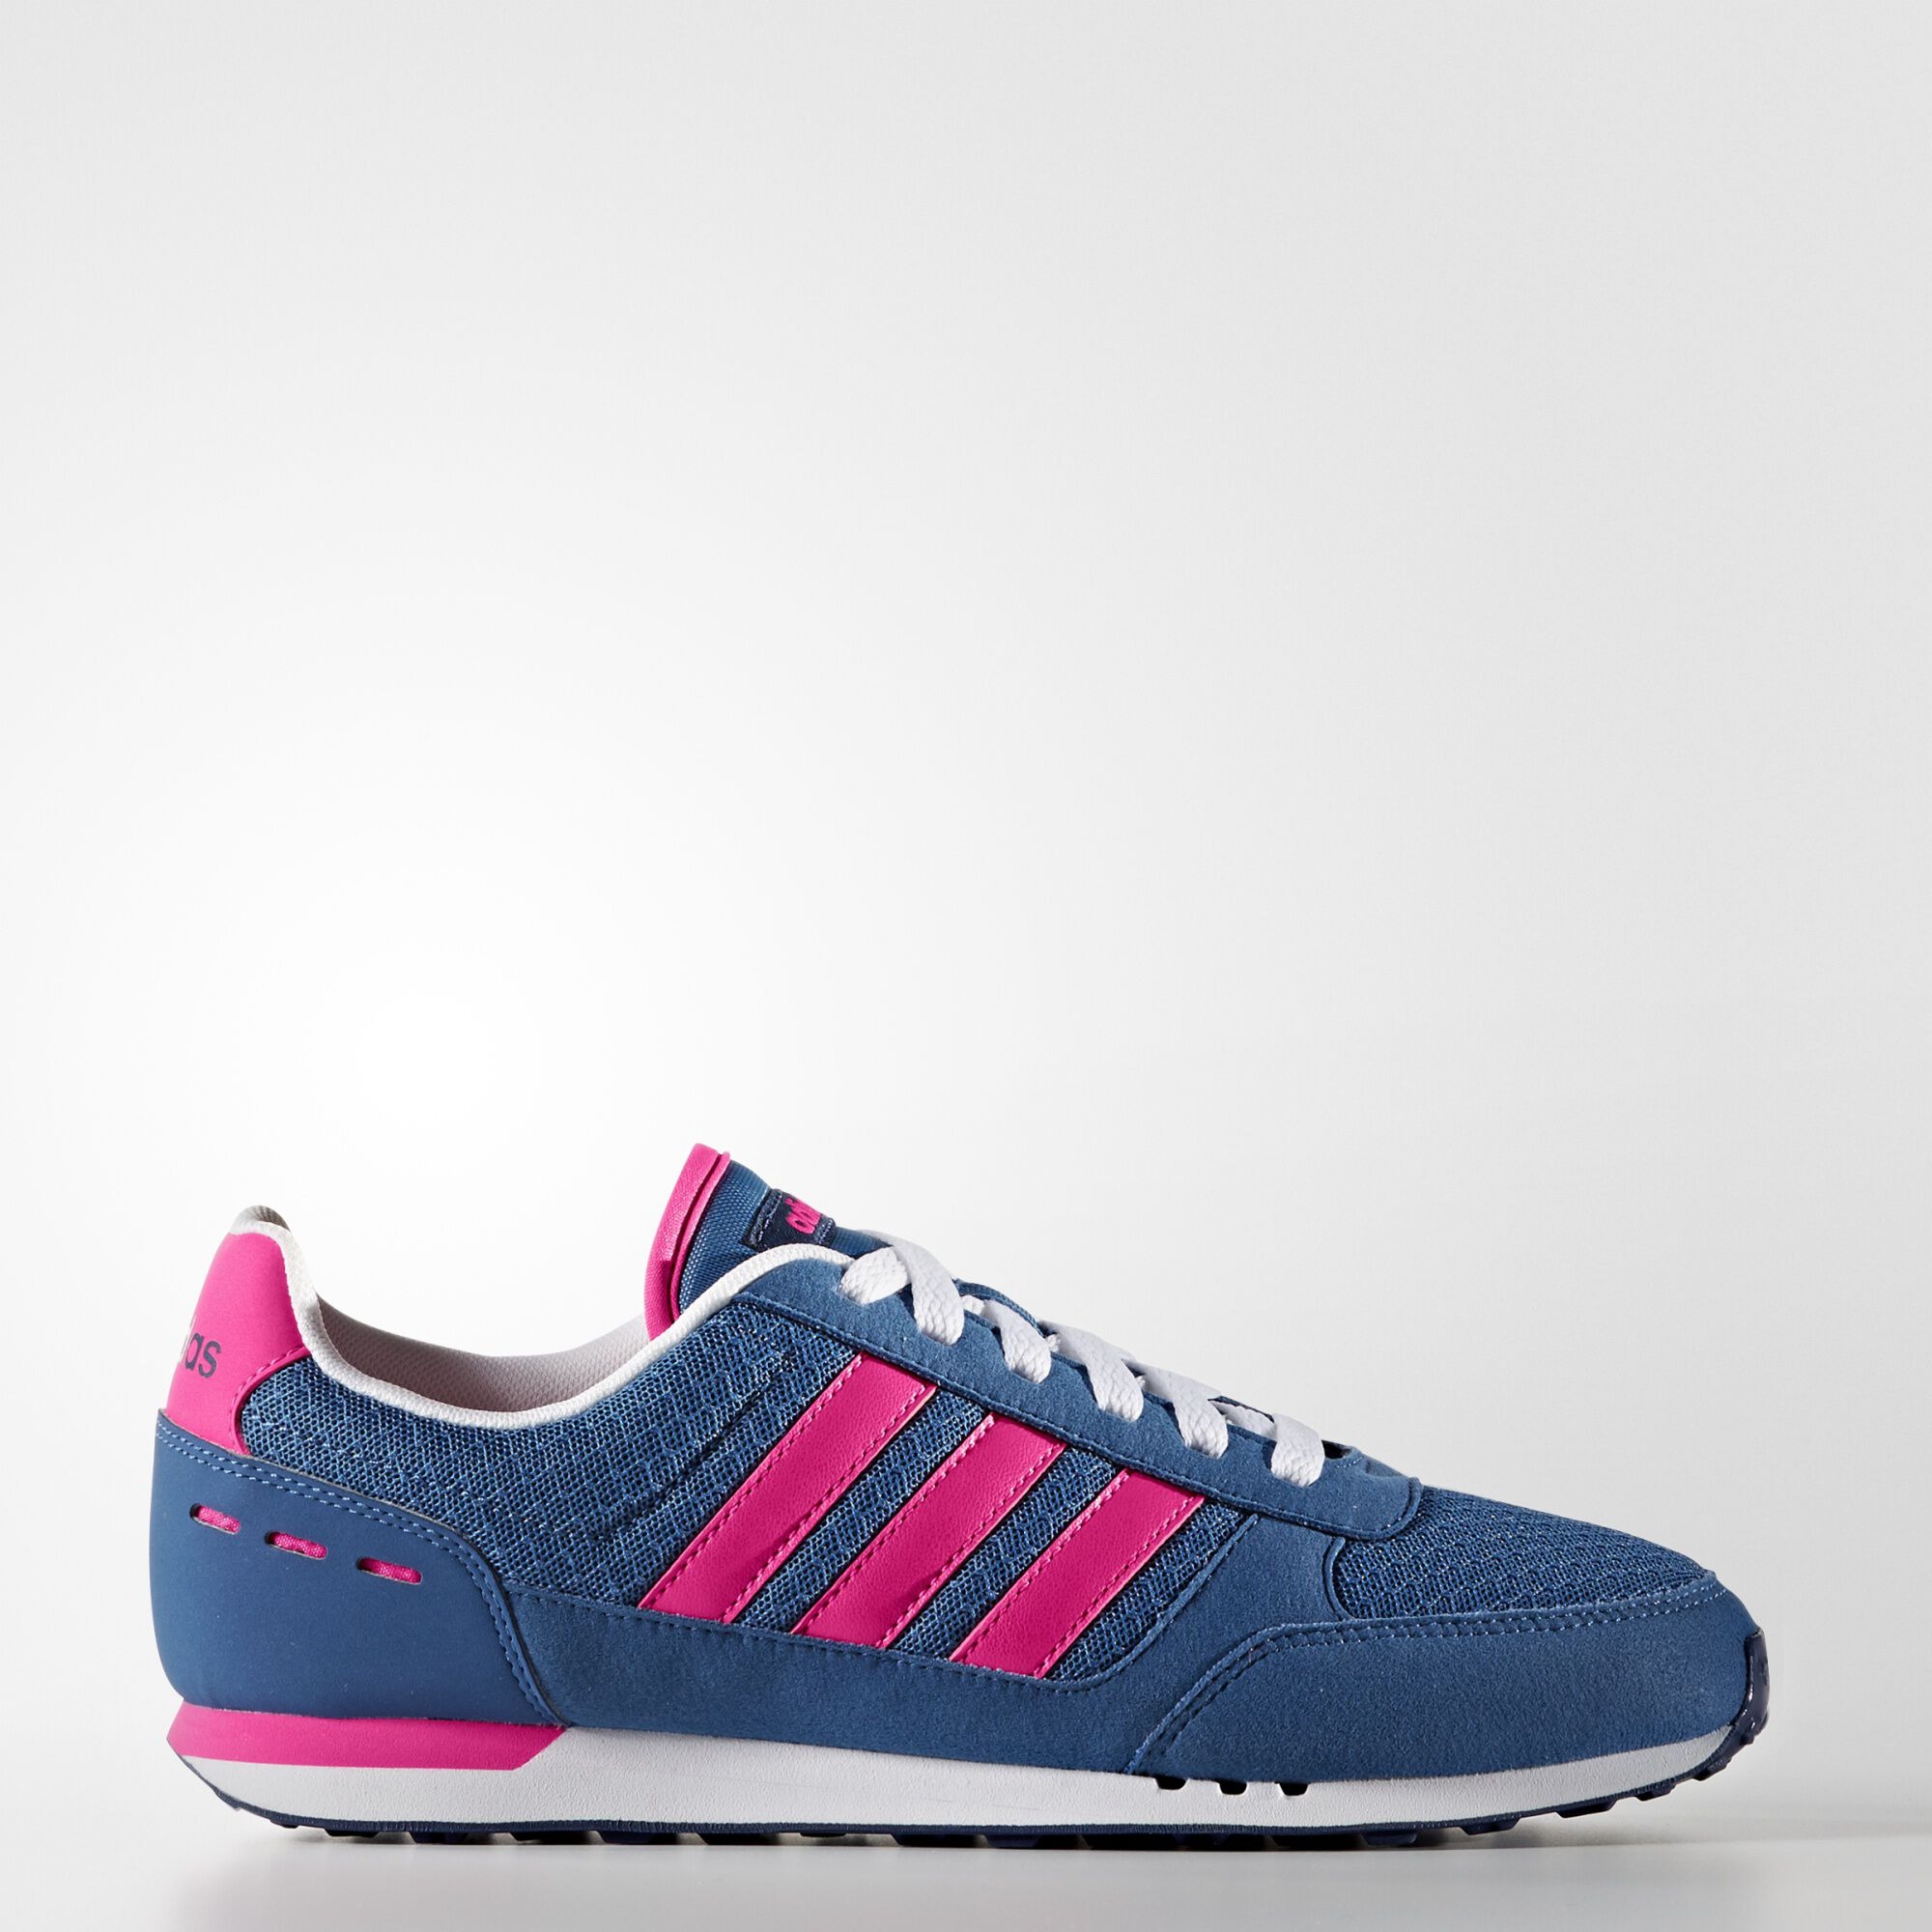 adidas neo mujer colombia